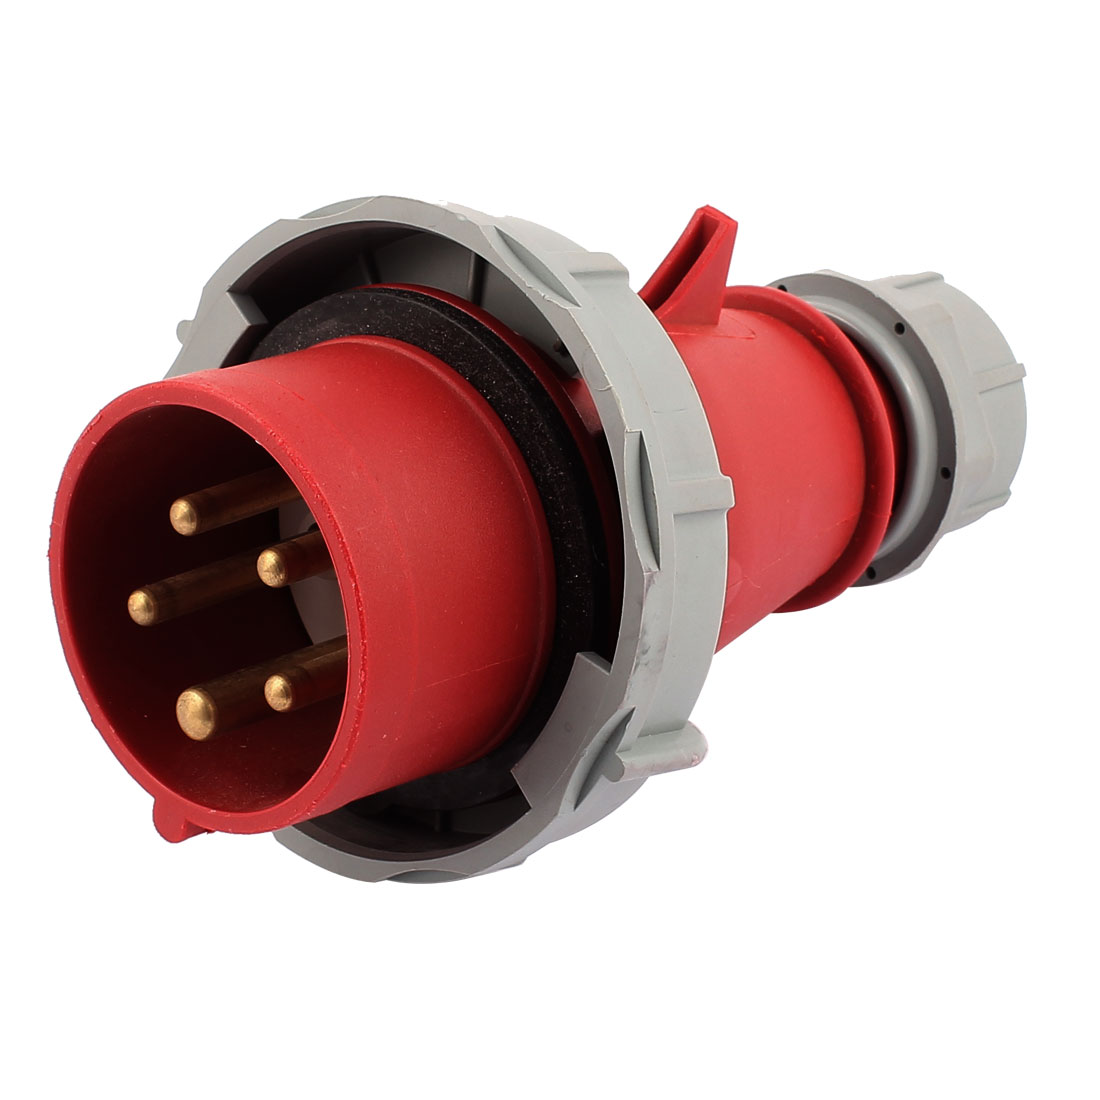 AC 240V-415V 16A IP67 3P+N+E 5-Terminal Male Industrial Electrical Plug